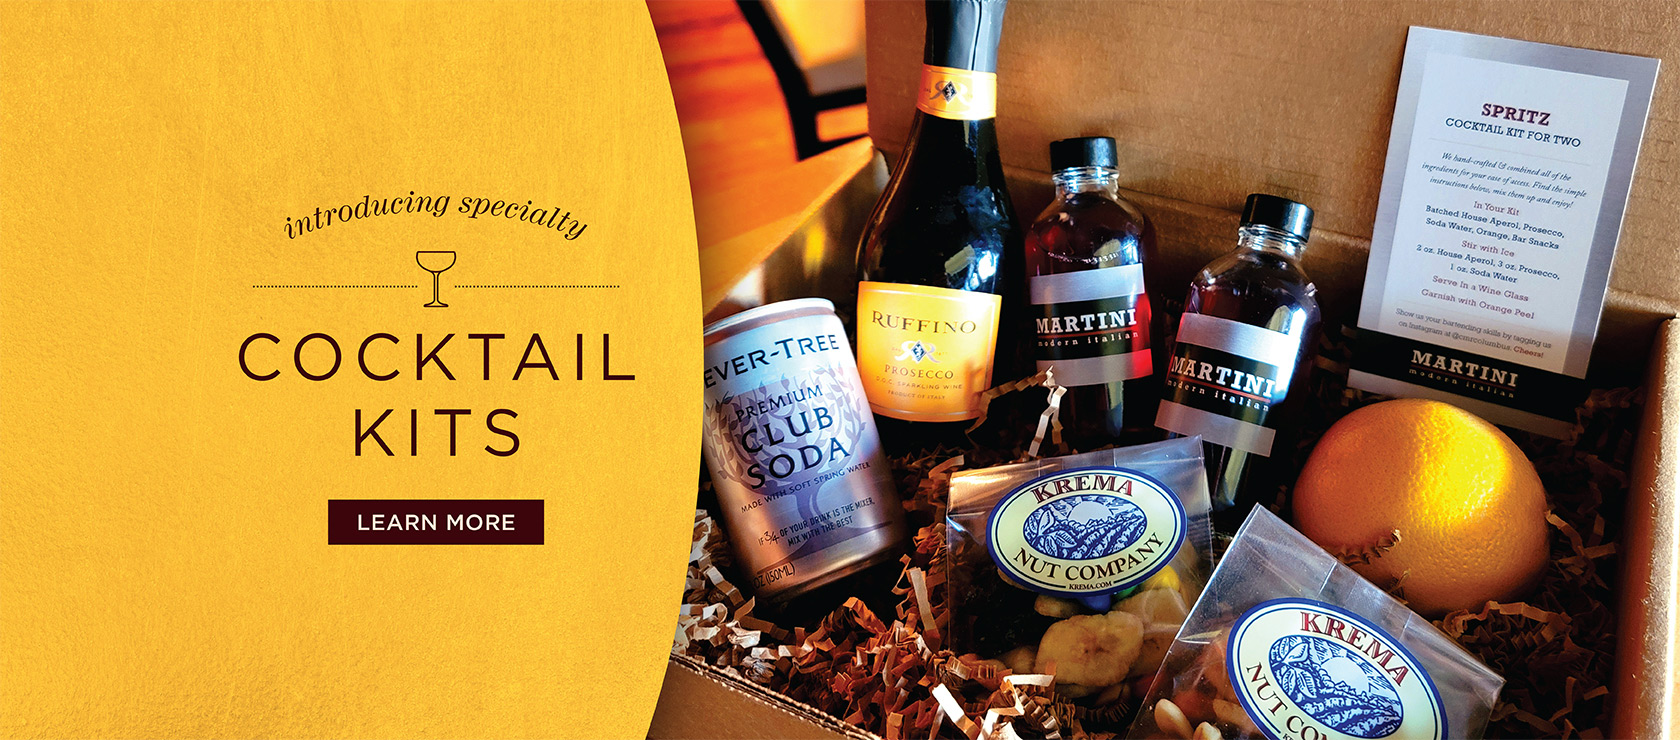 Introducing Specialty Cocktail Kits. Learn More.